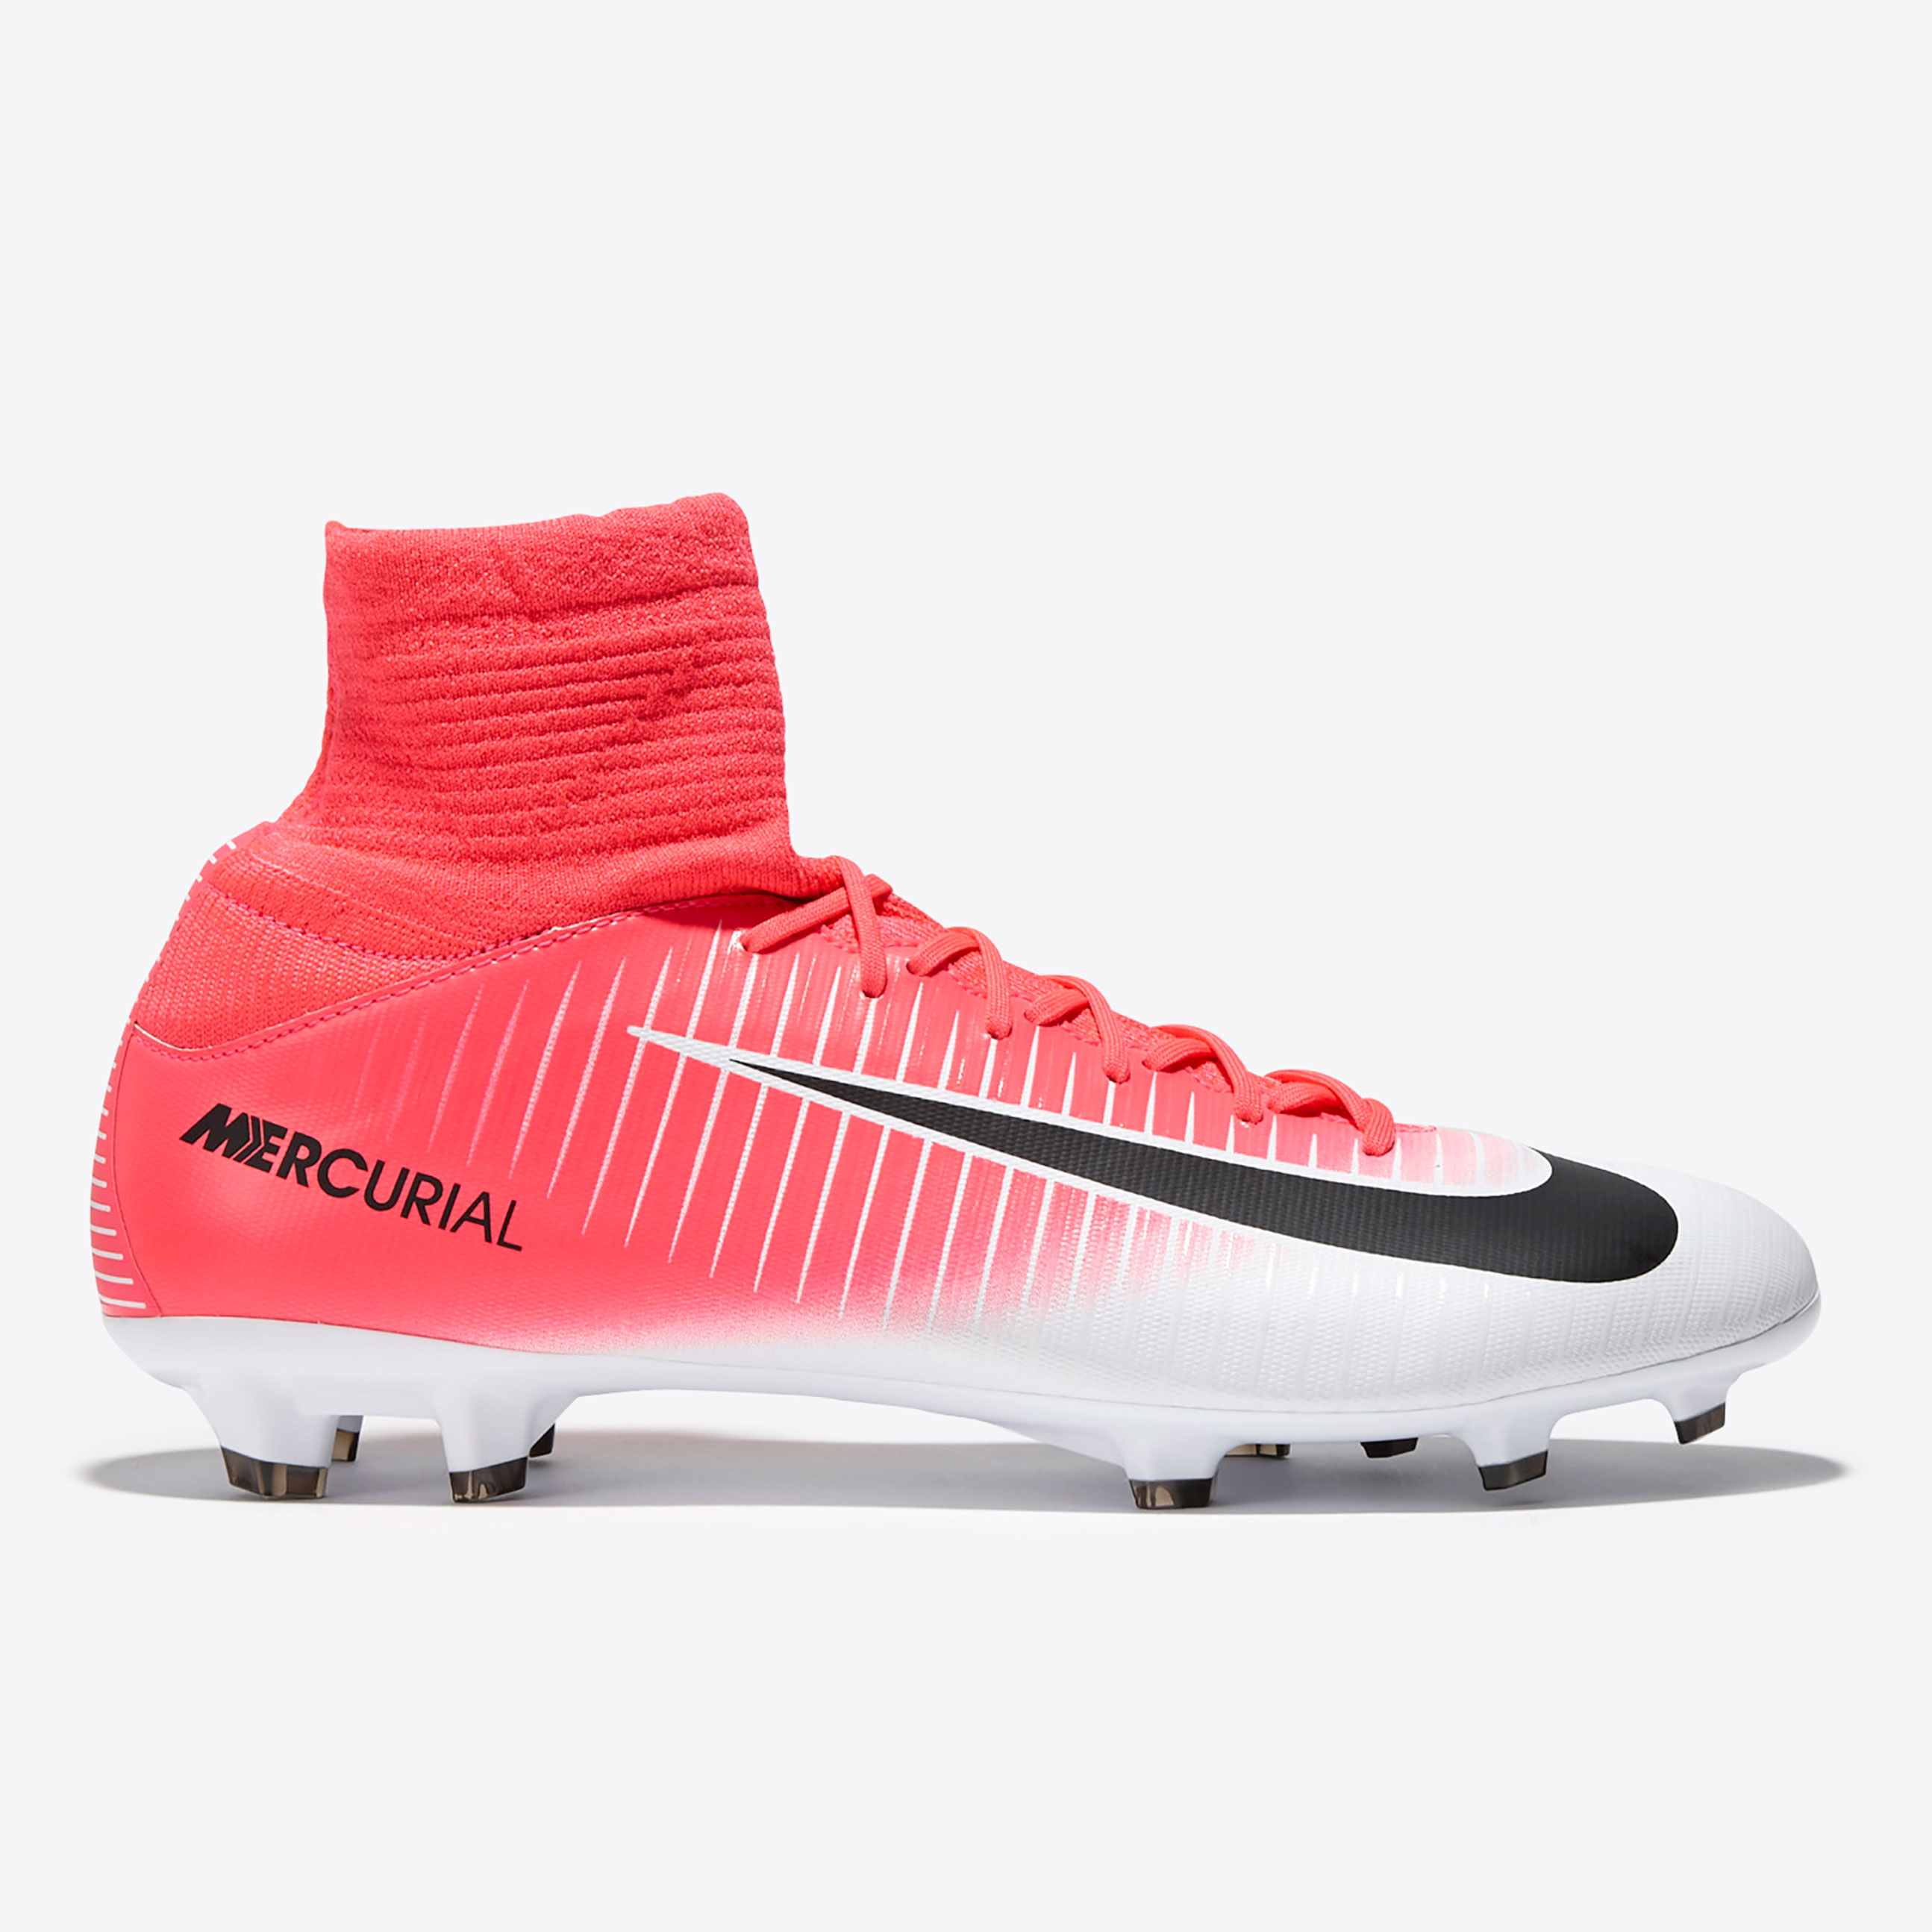 Nike Mercurial Superfly V Firm Ground Football Boots - Racer Pink/Blac